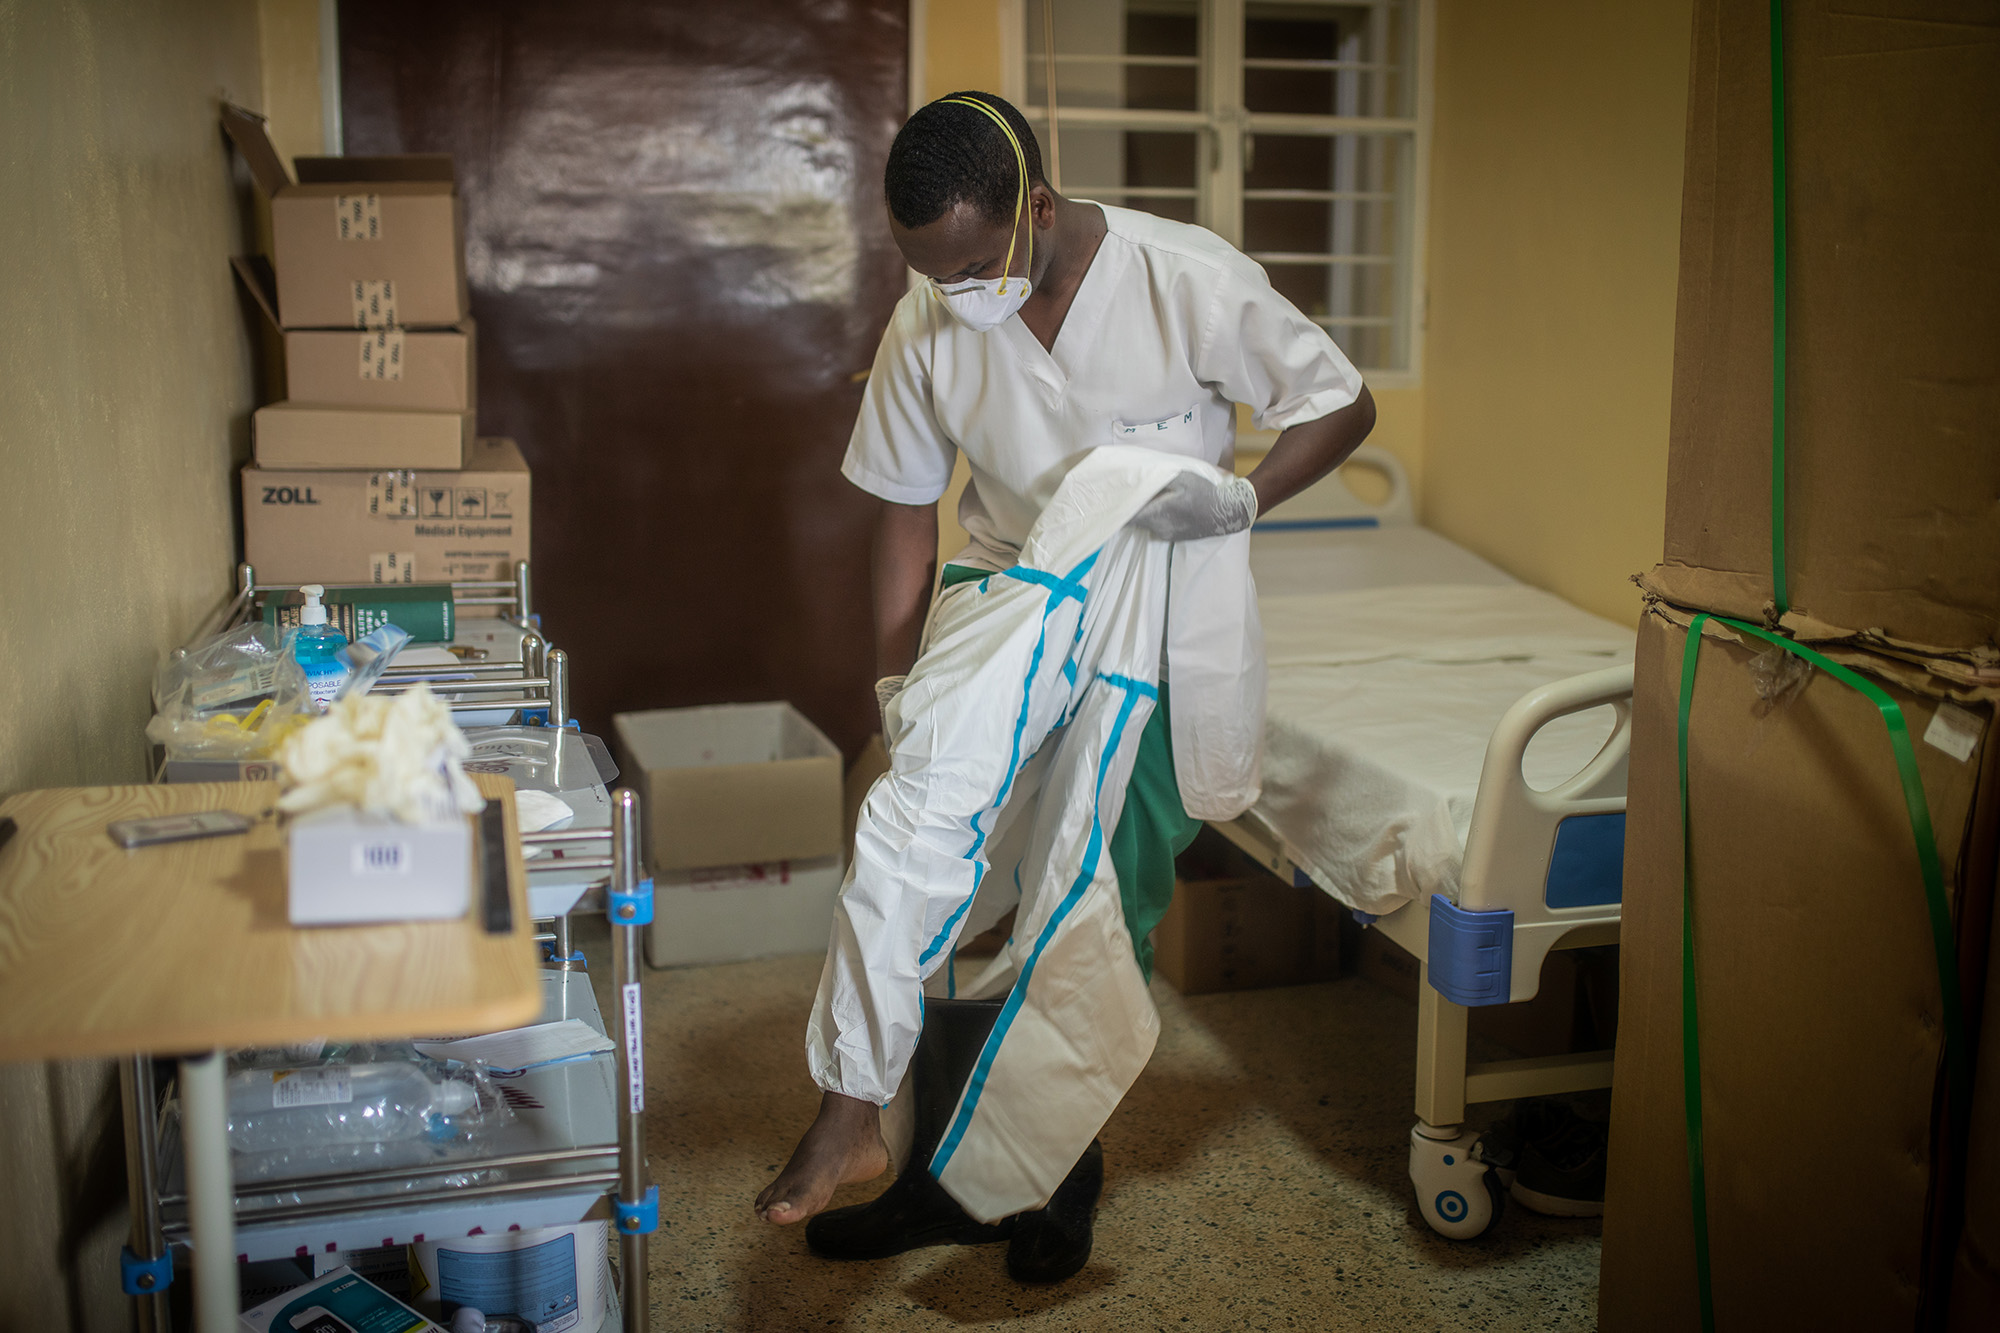 A health worker puts on personal protective equipment in Rwanda. Photo by Innocent Ishimwe for IntraHealth International.